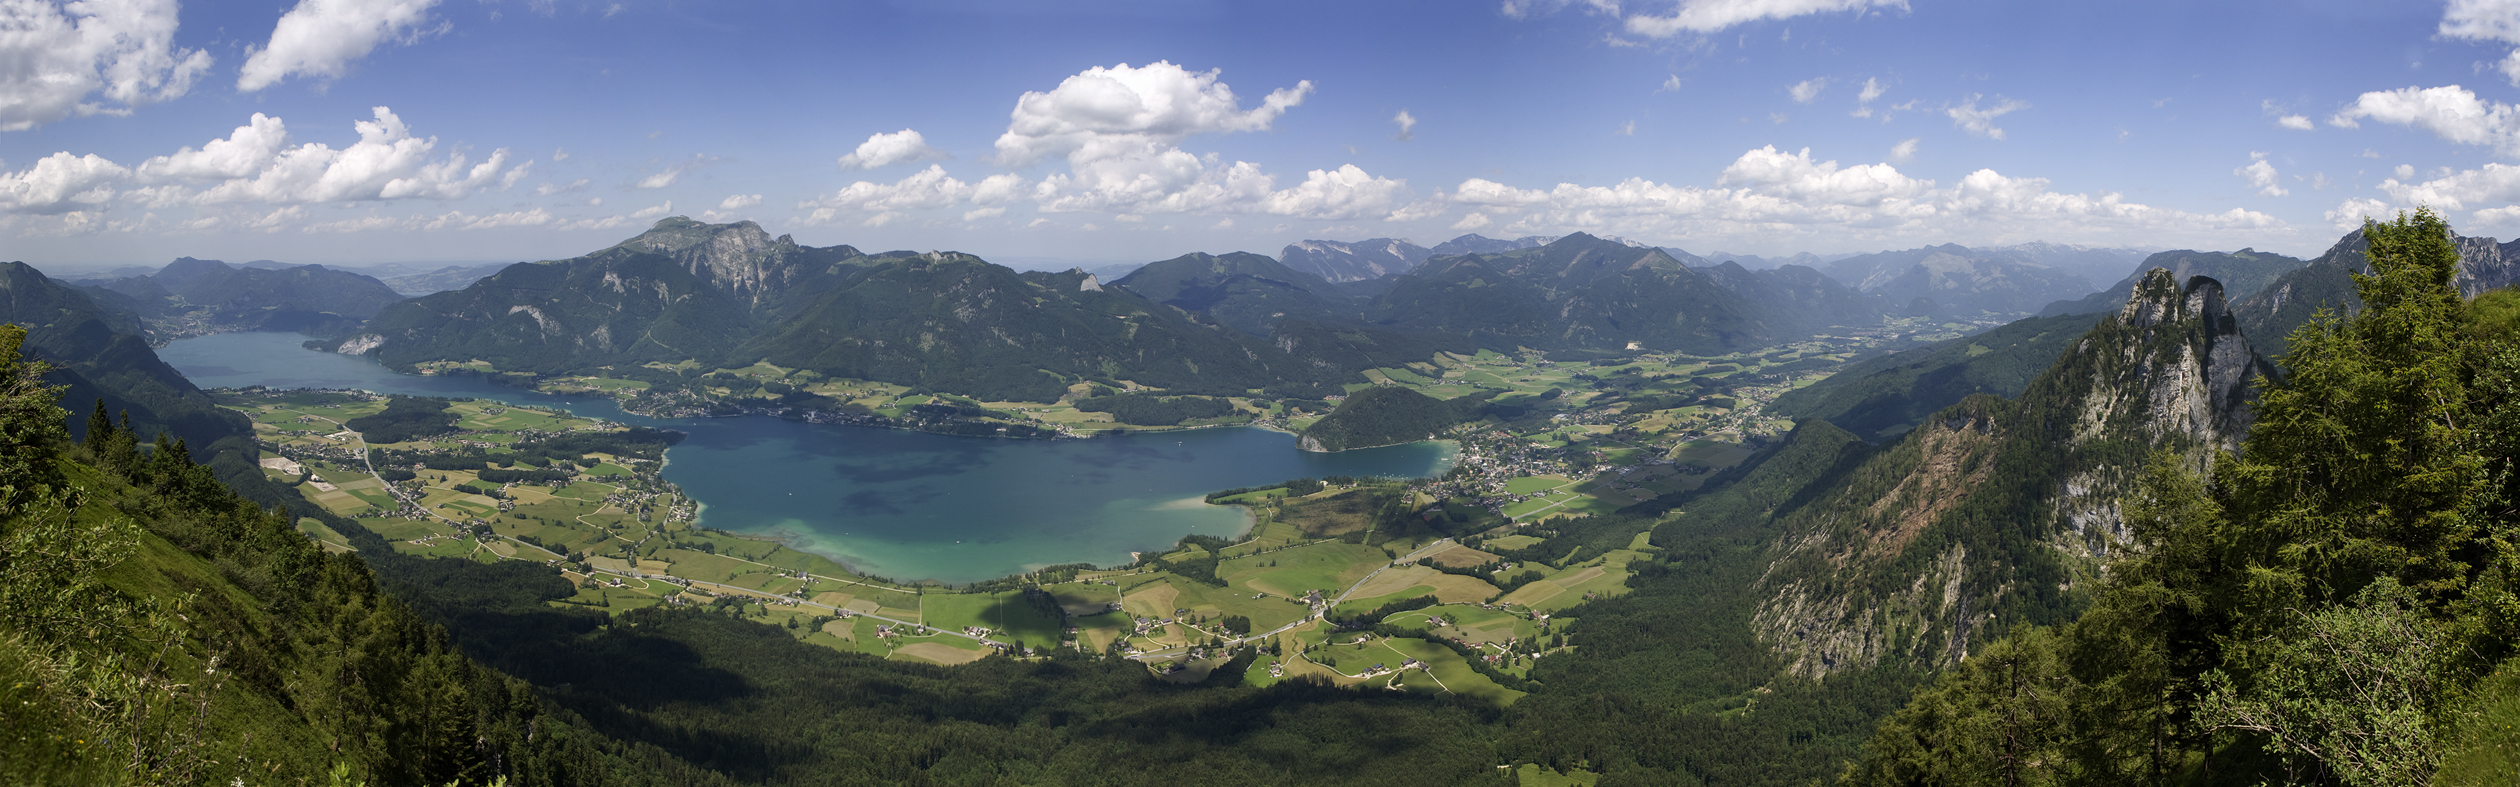 Headwater - Austrian Lakes Self-guided Activities